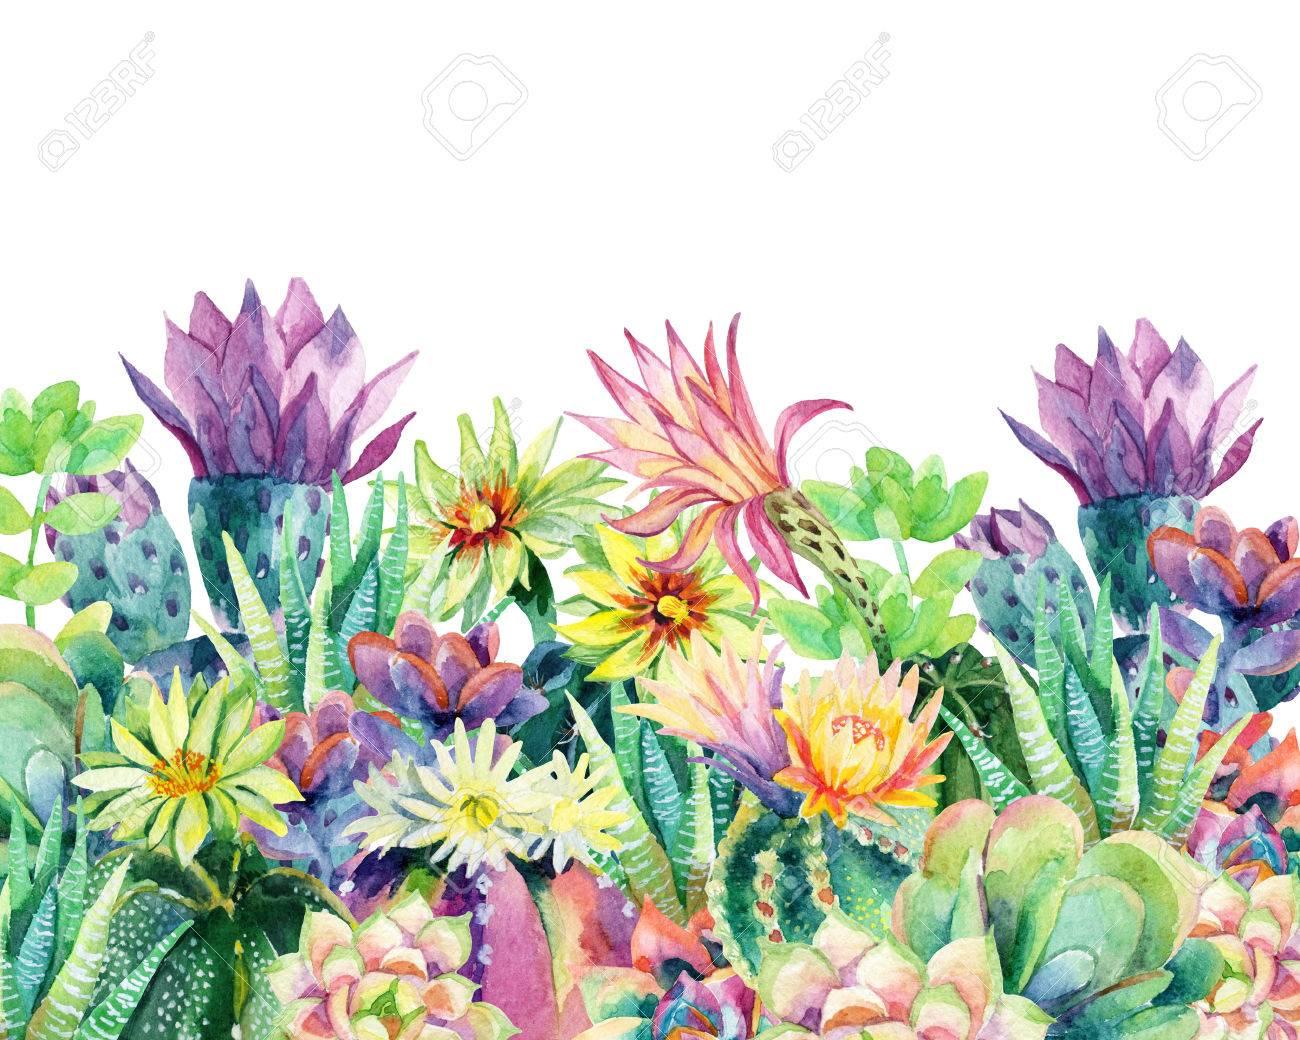 Watercolor Blooming Cactus Background Exotic Cacti With Flowers Stock Photo Picture And Royalty Free Image Image 78069058